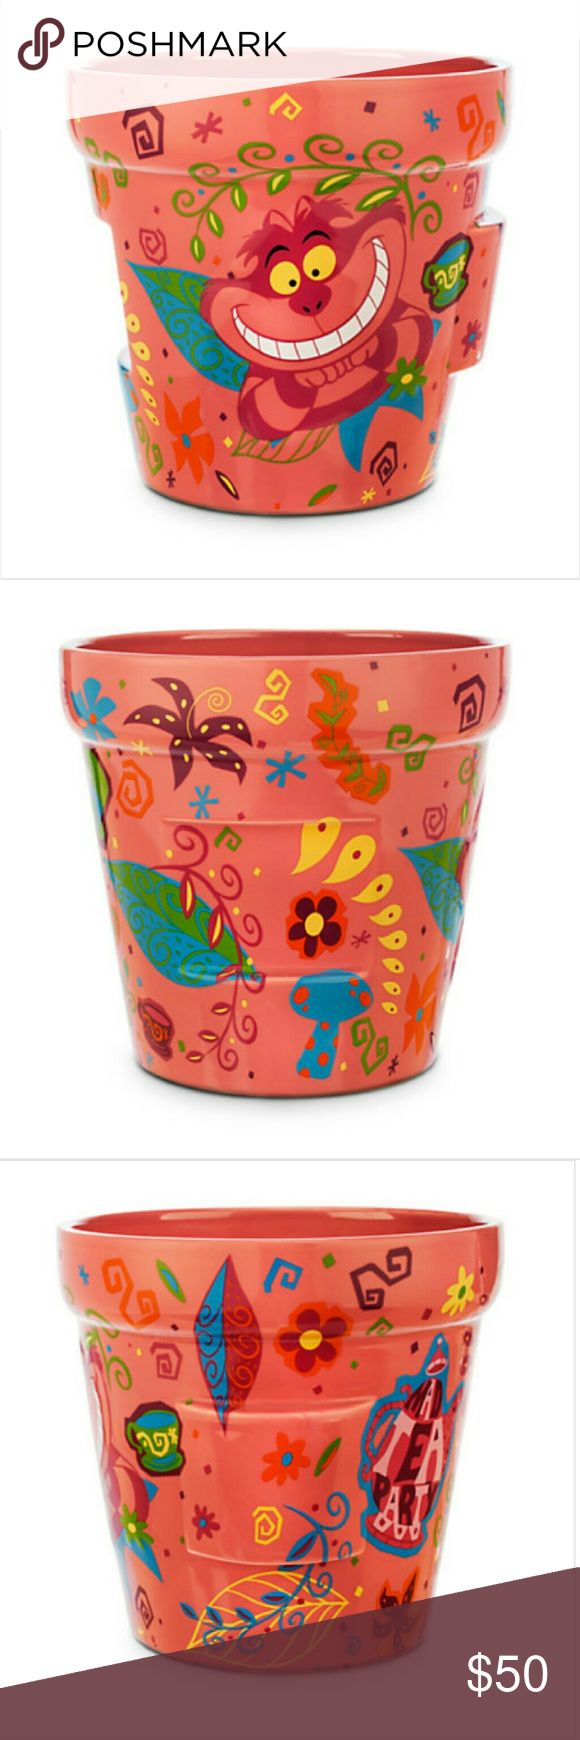 Disney Store Alice in Wonderland Large Flower Pot Brand new in original foam and packaging from the Disney store online. Ships from a smoke free and pet free home. Disney Other